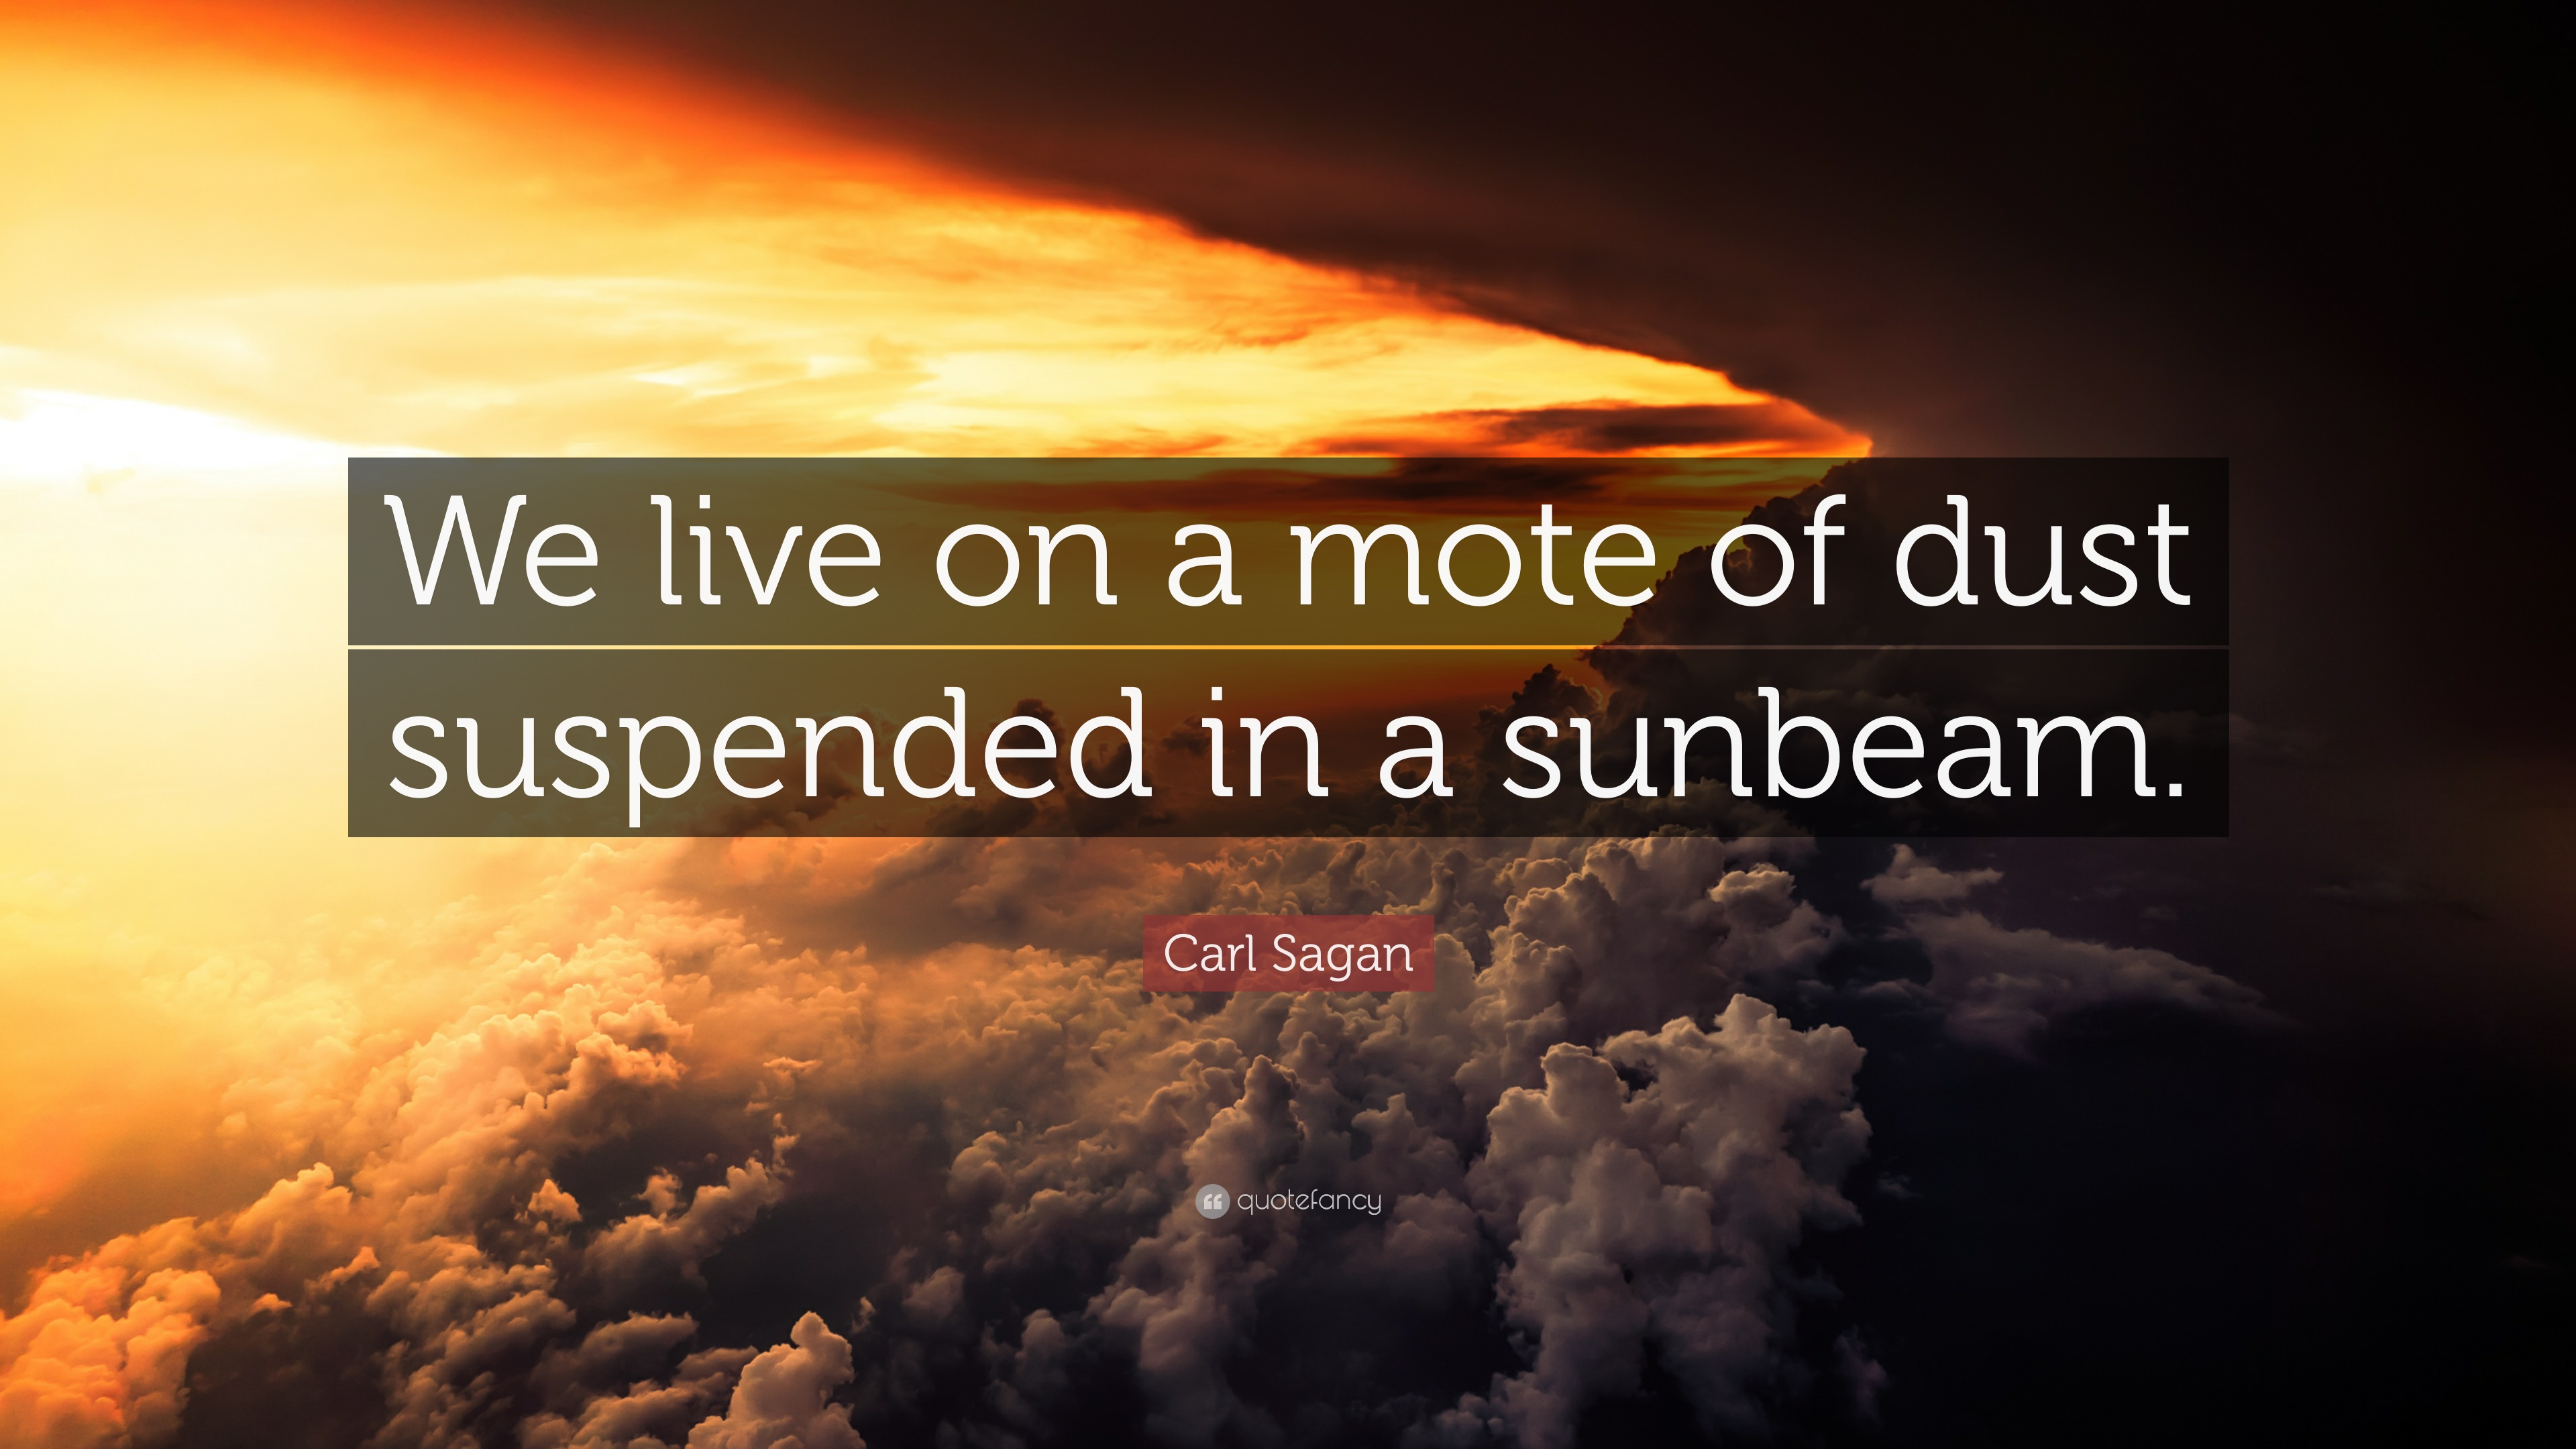 Studying Quotes Wallpaper Carl Sagan Quote We Live On A Mote Of Dust Suspended In